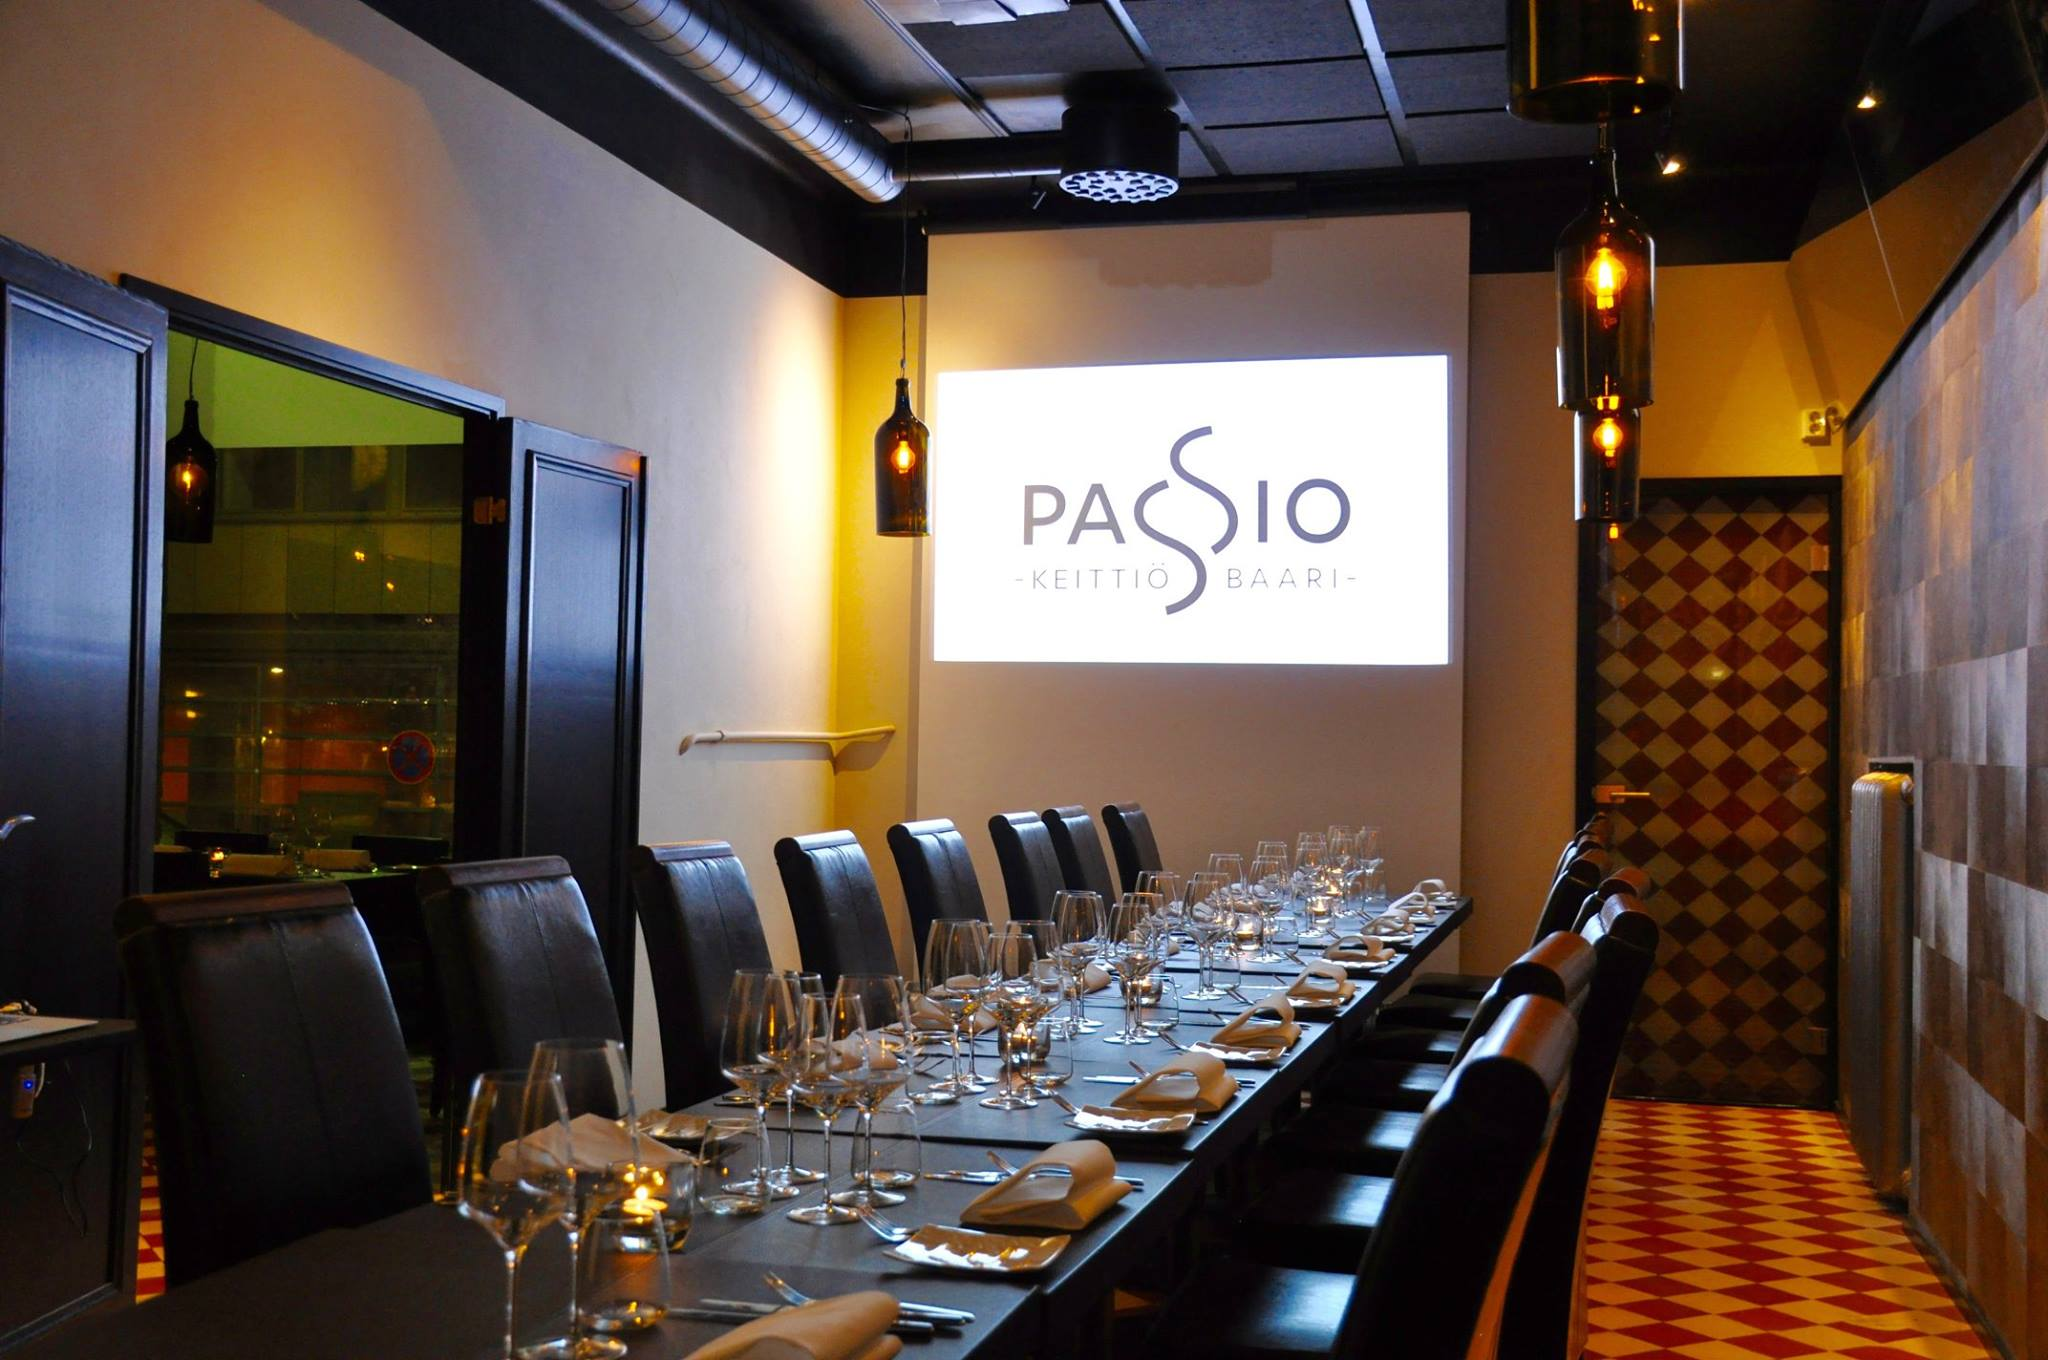 Passio Kitchen and Bar